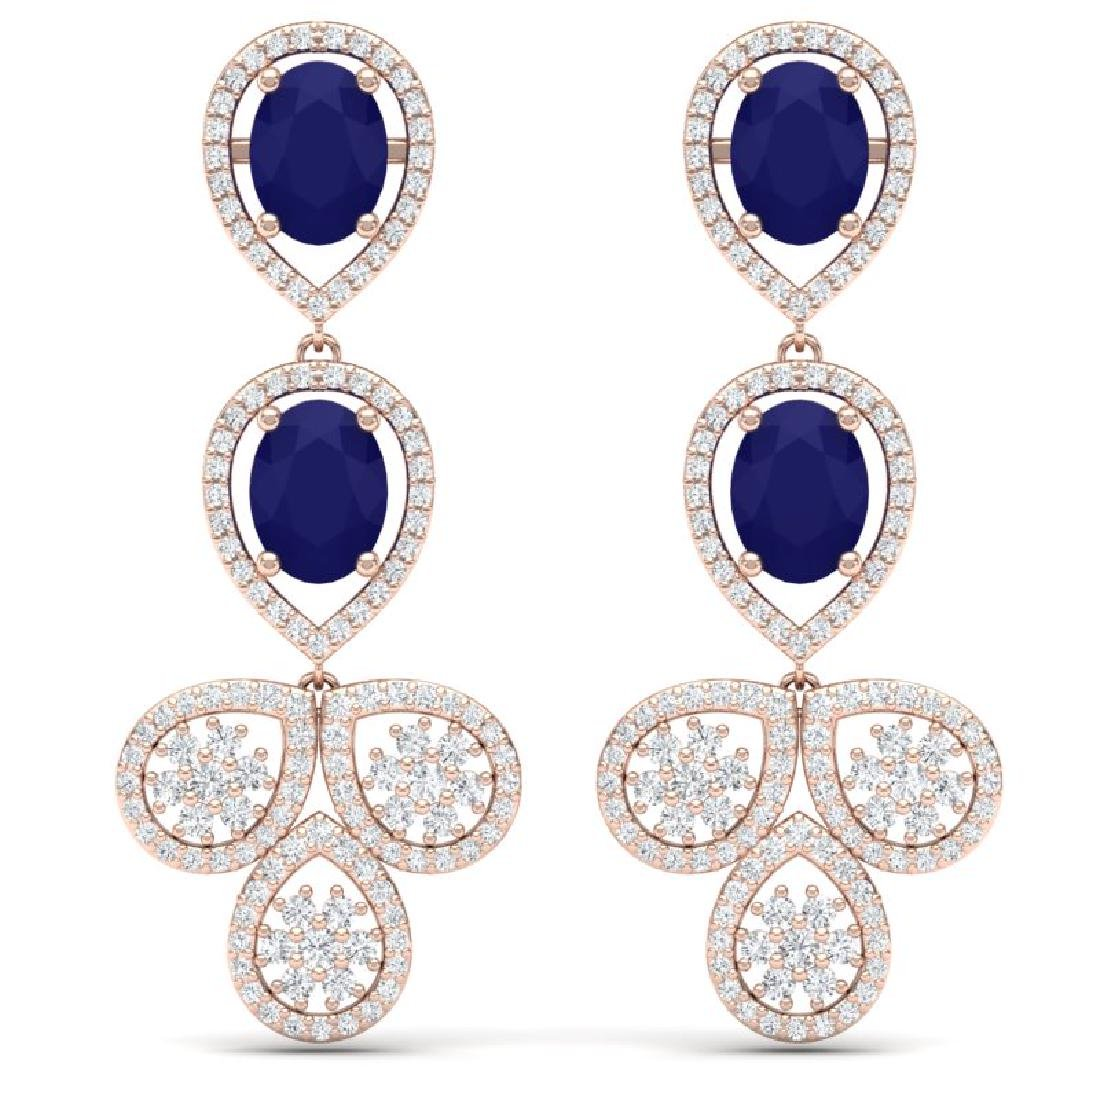 9.75 CTW Royalty Sapphire & VS Diamond Earrings 18K